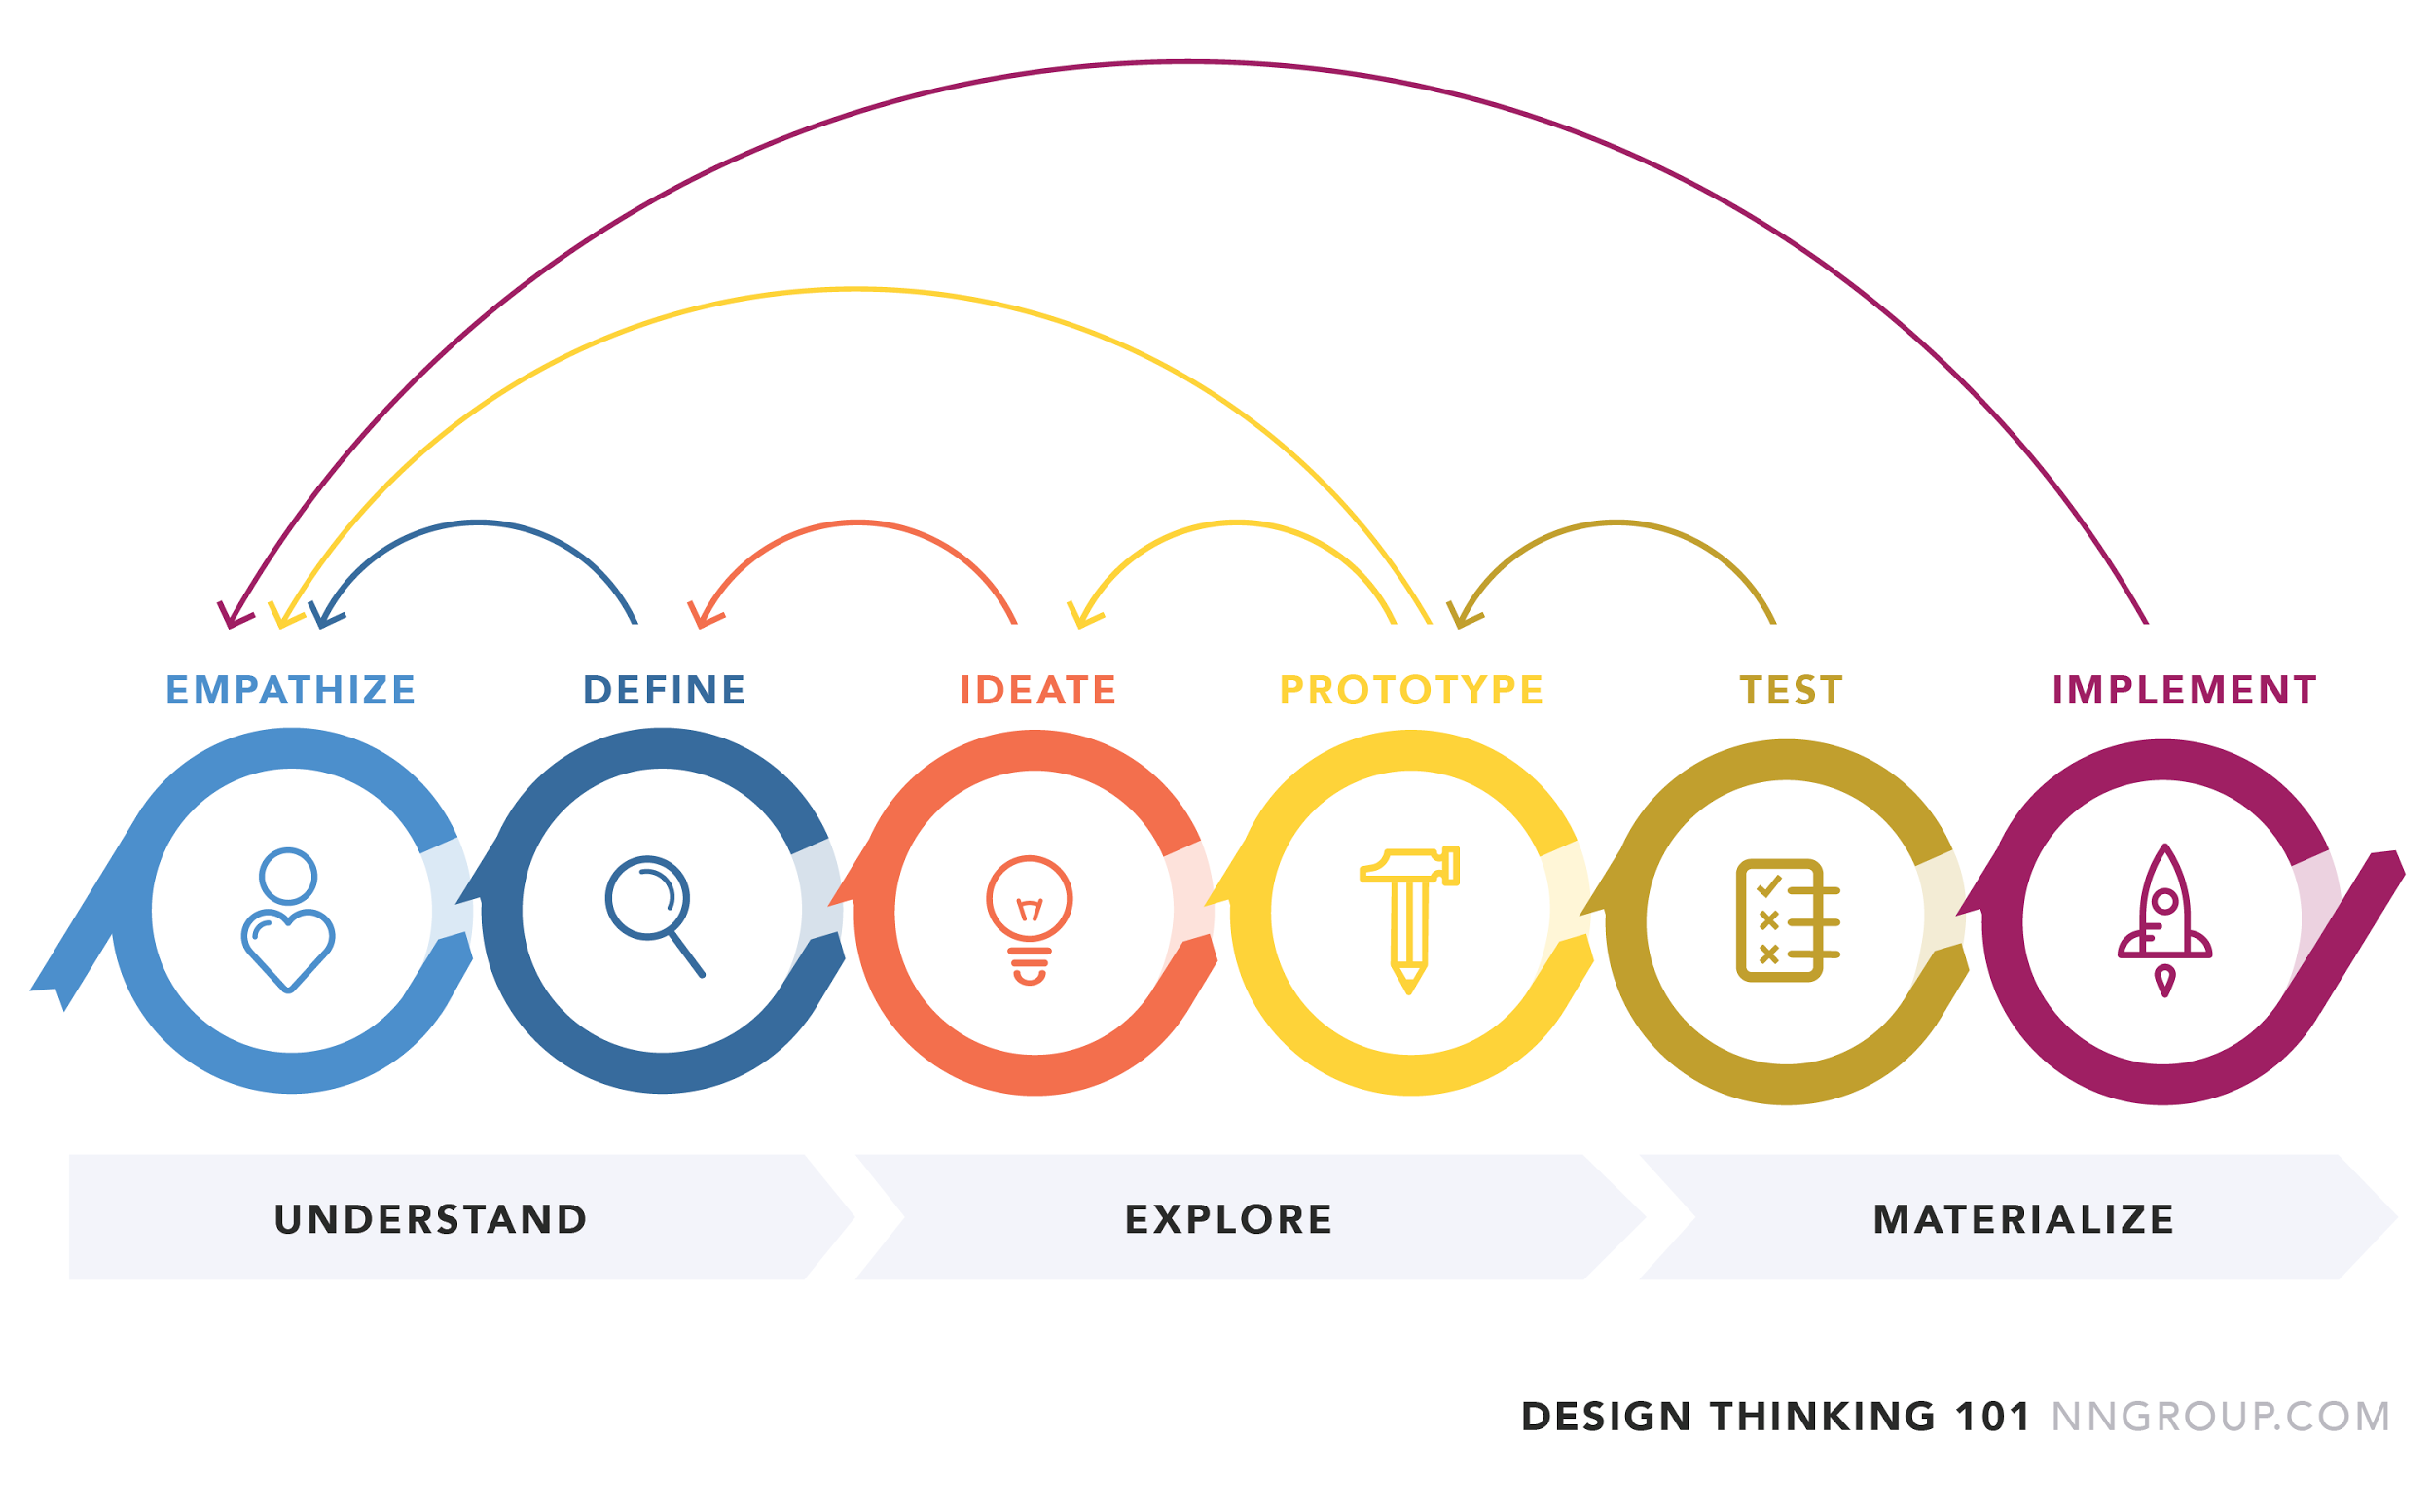 User-centered design process, design thinking, prototyping